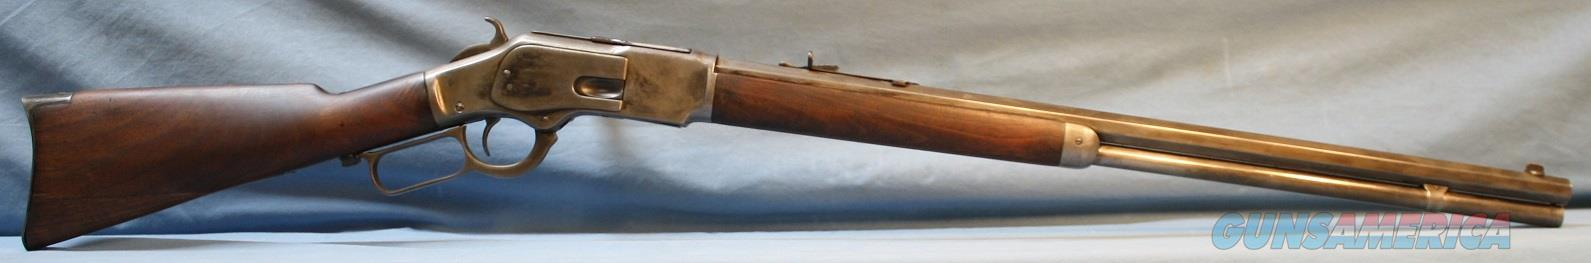 Winchester 1873 Lever Action Rifle, made 1913, .38 WCF (38-40) Free Shipping!  Guns > Rifles > Winchester Rifles - Modern Lever > Other Lever > Pre-64